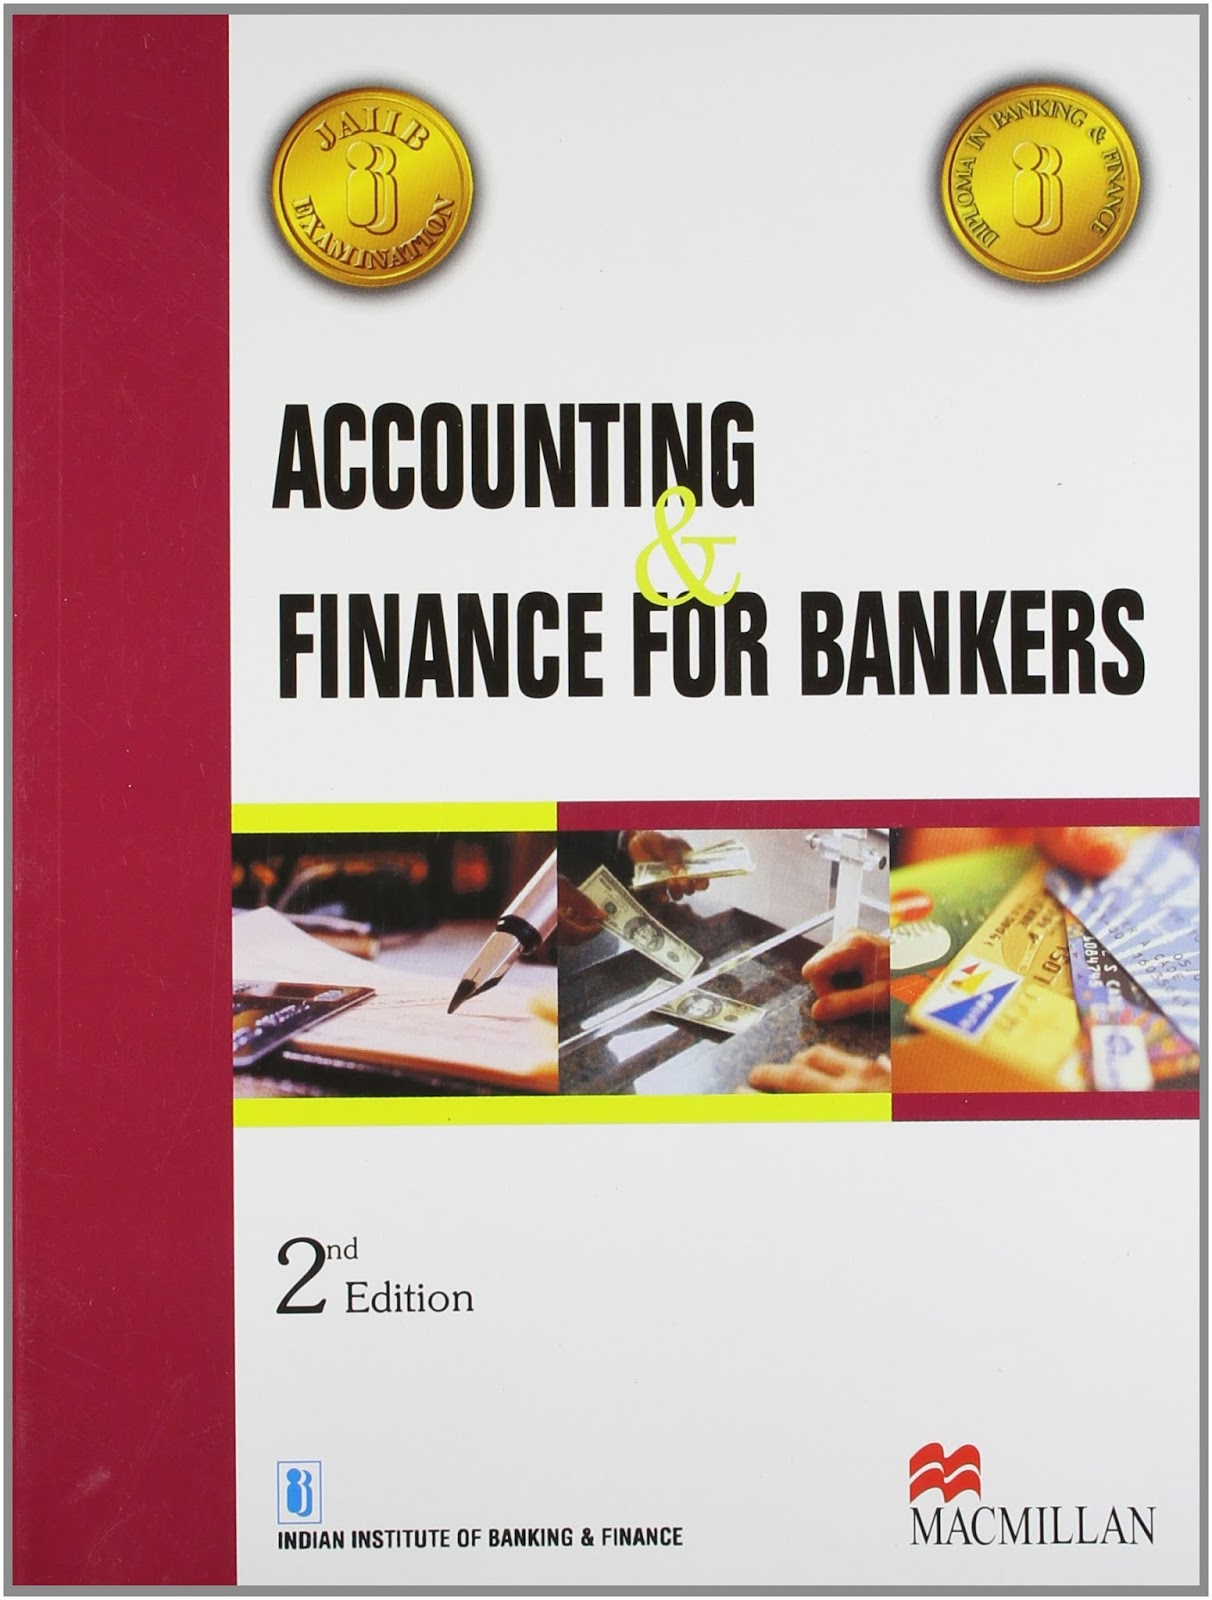 Accounting & Finance For Bankers Pdf